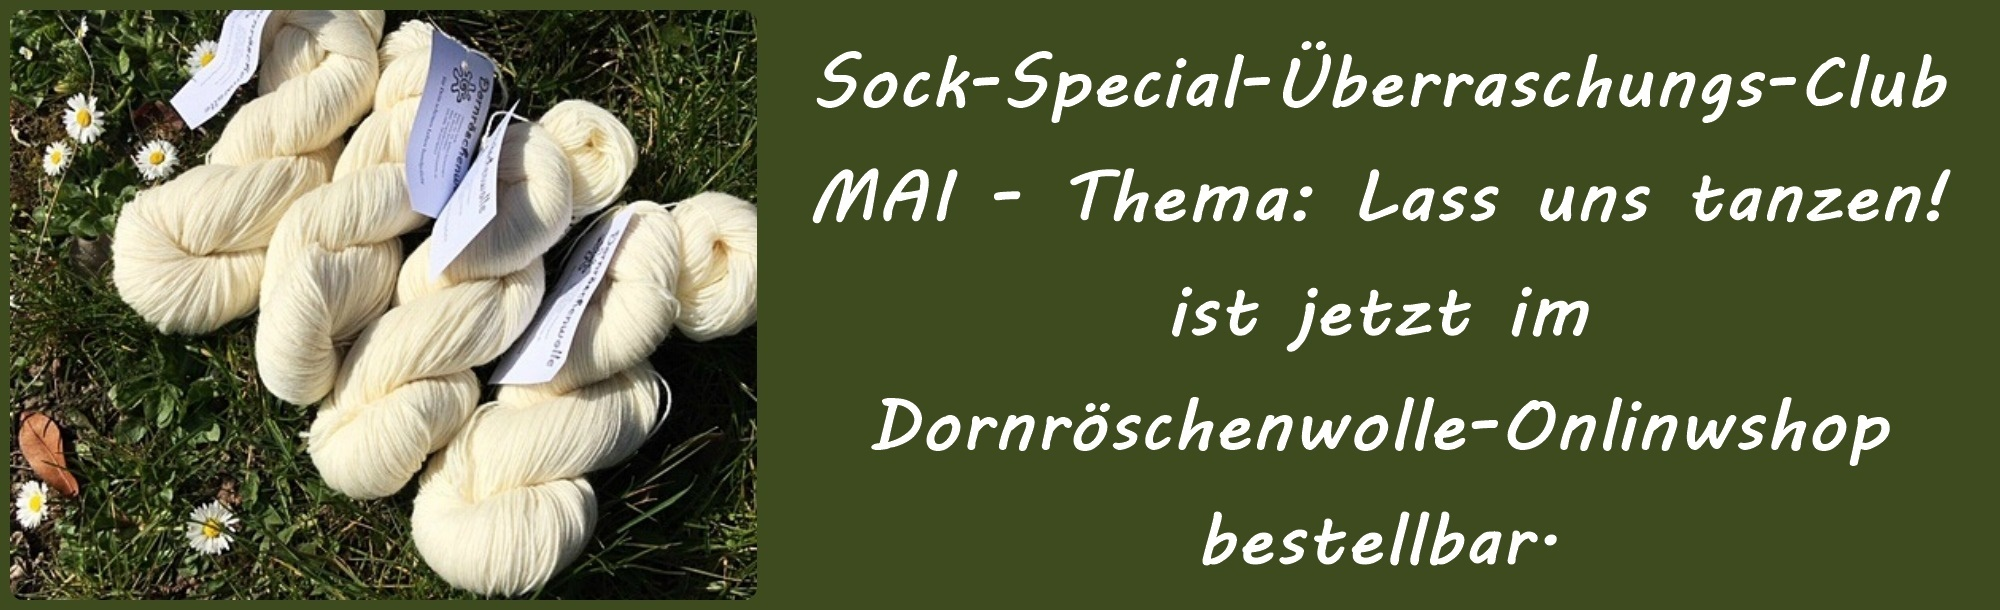 mail_sock_special_club_bild